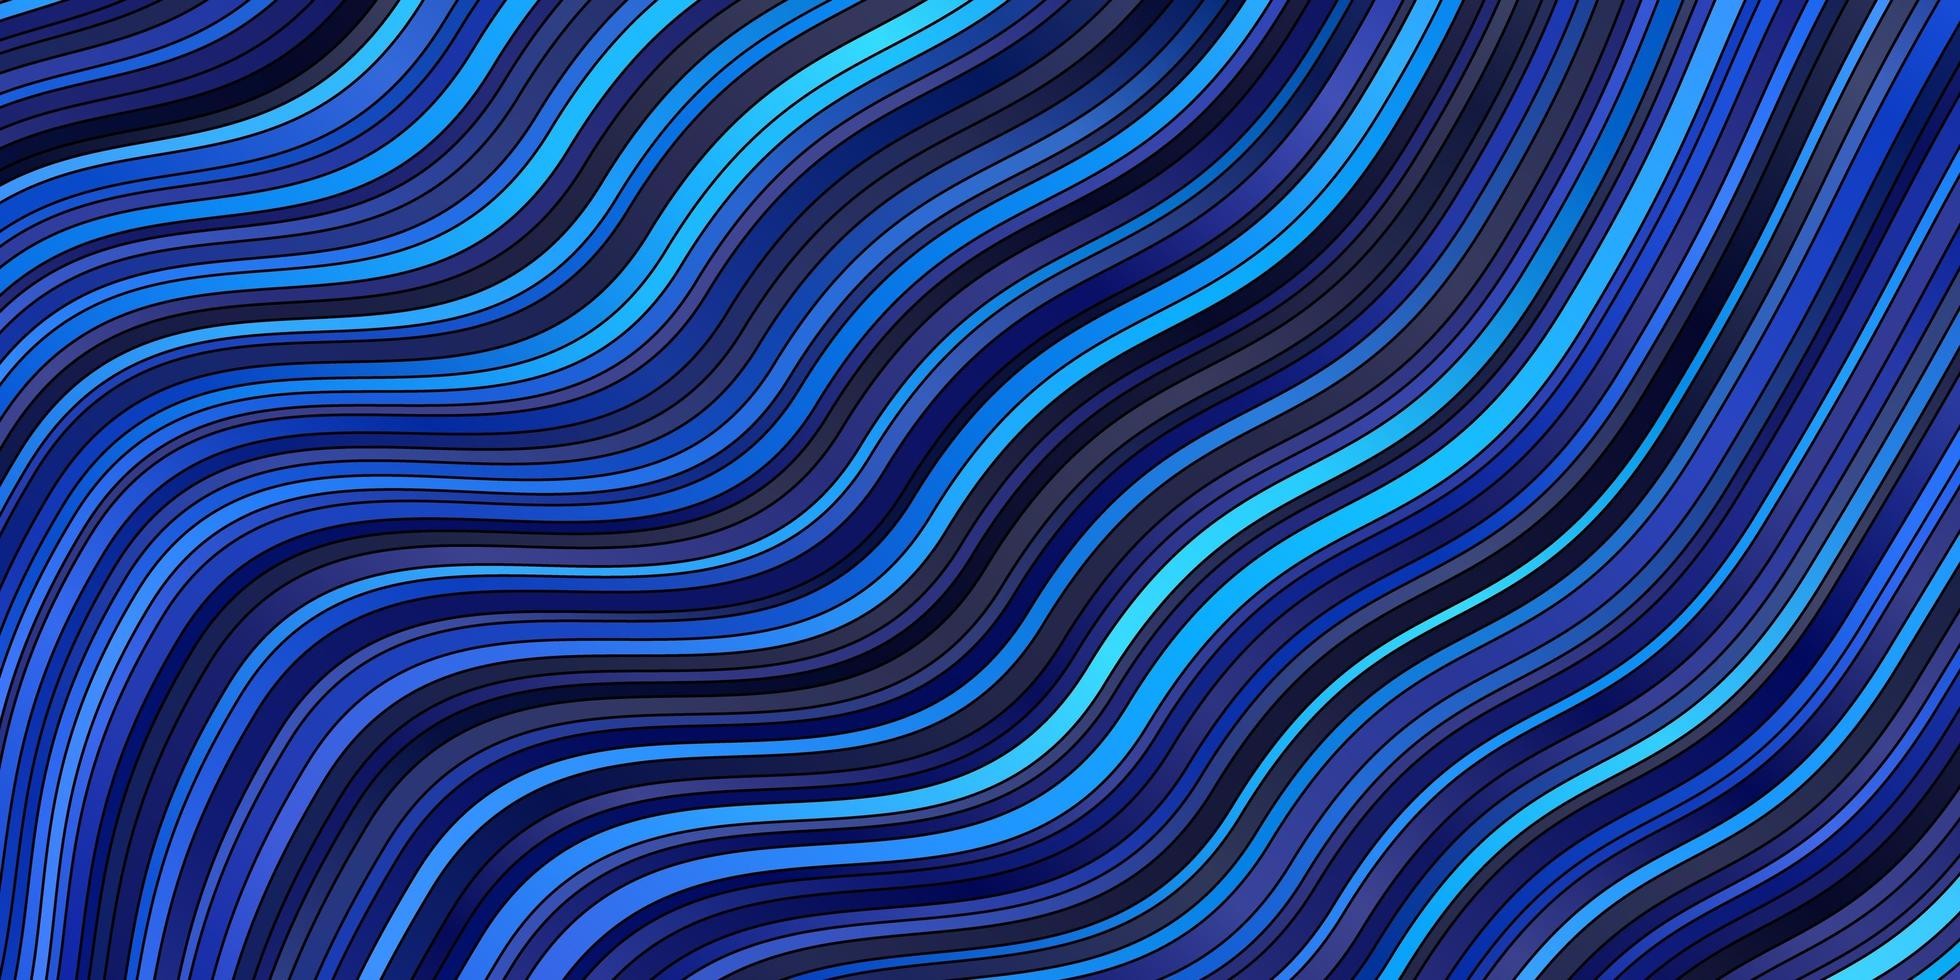 Light BLUE vector pattern with curves.